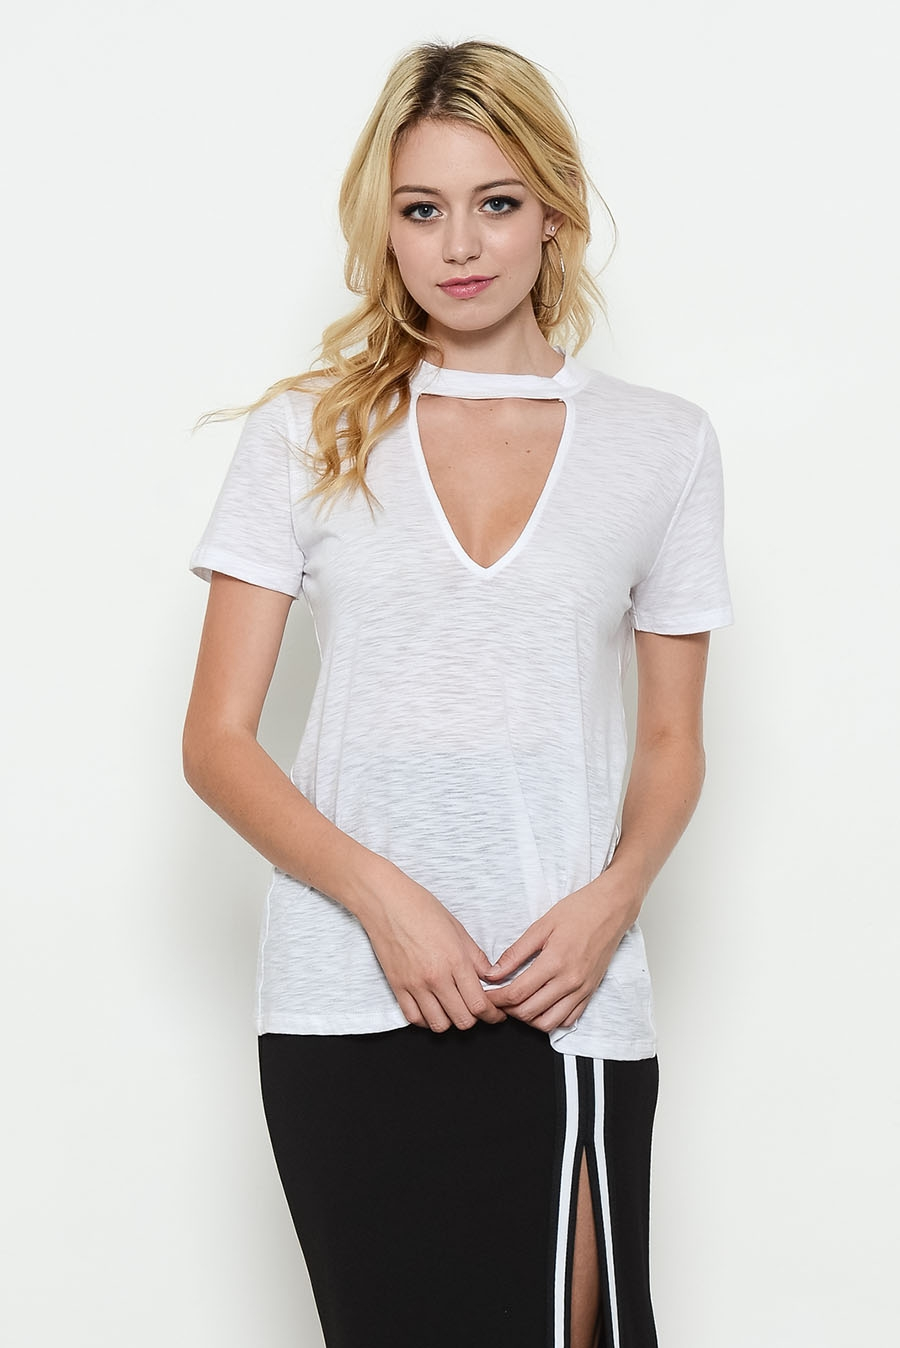 COTTON SHORT CUTOUT NECK TOP - orangeshine.com